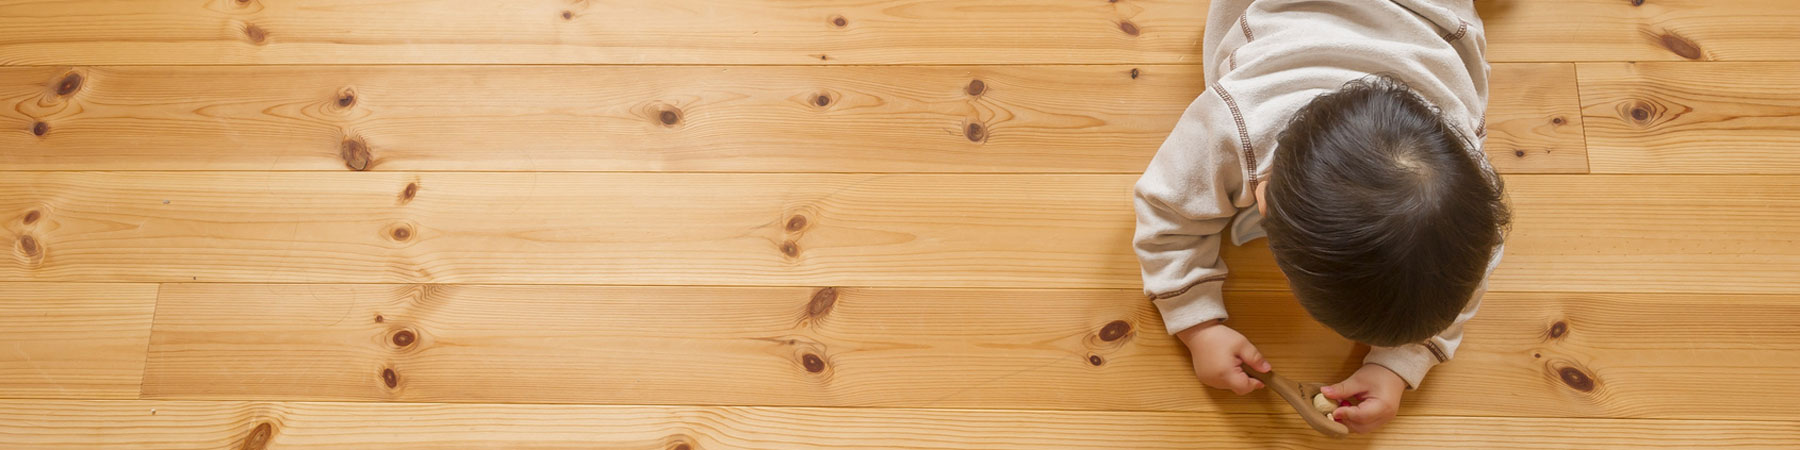 Kid Playing With Toy On Hardwood Flooring